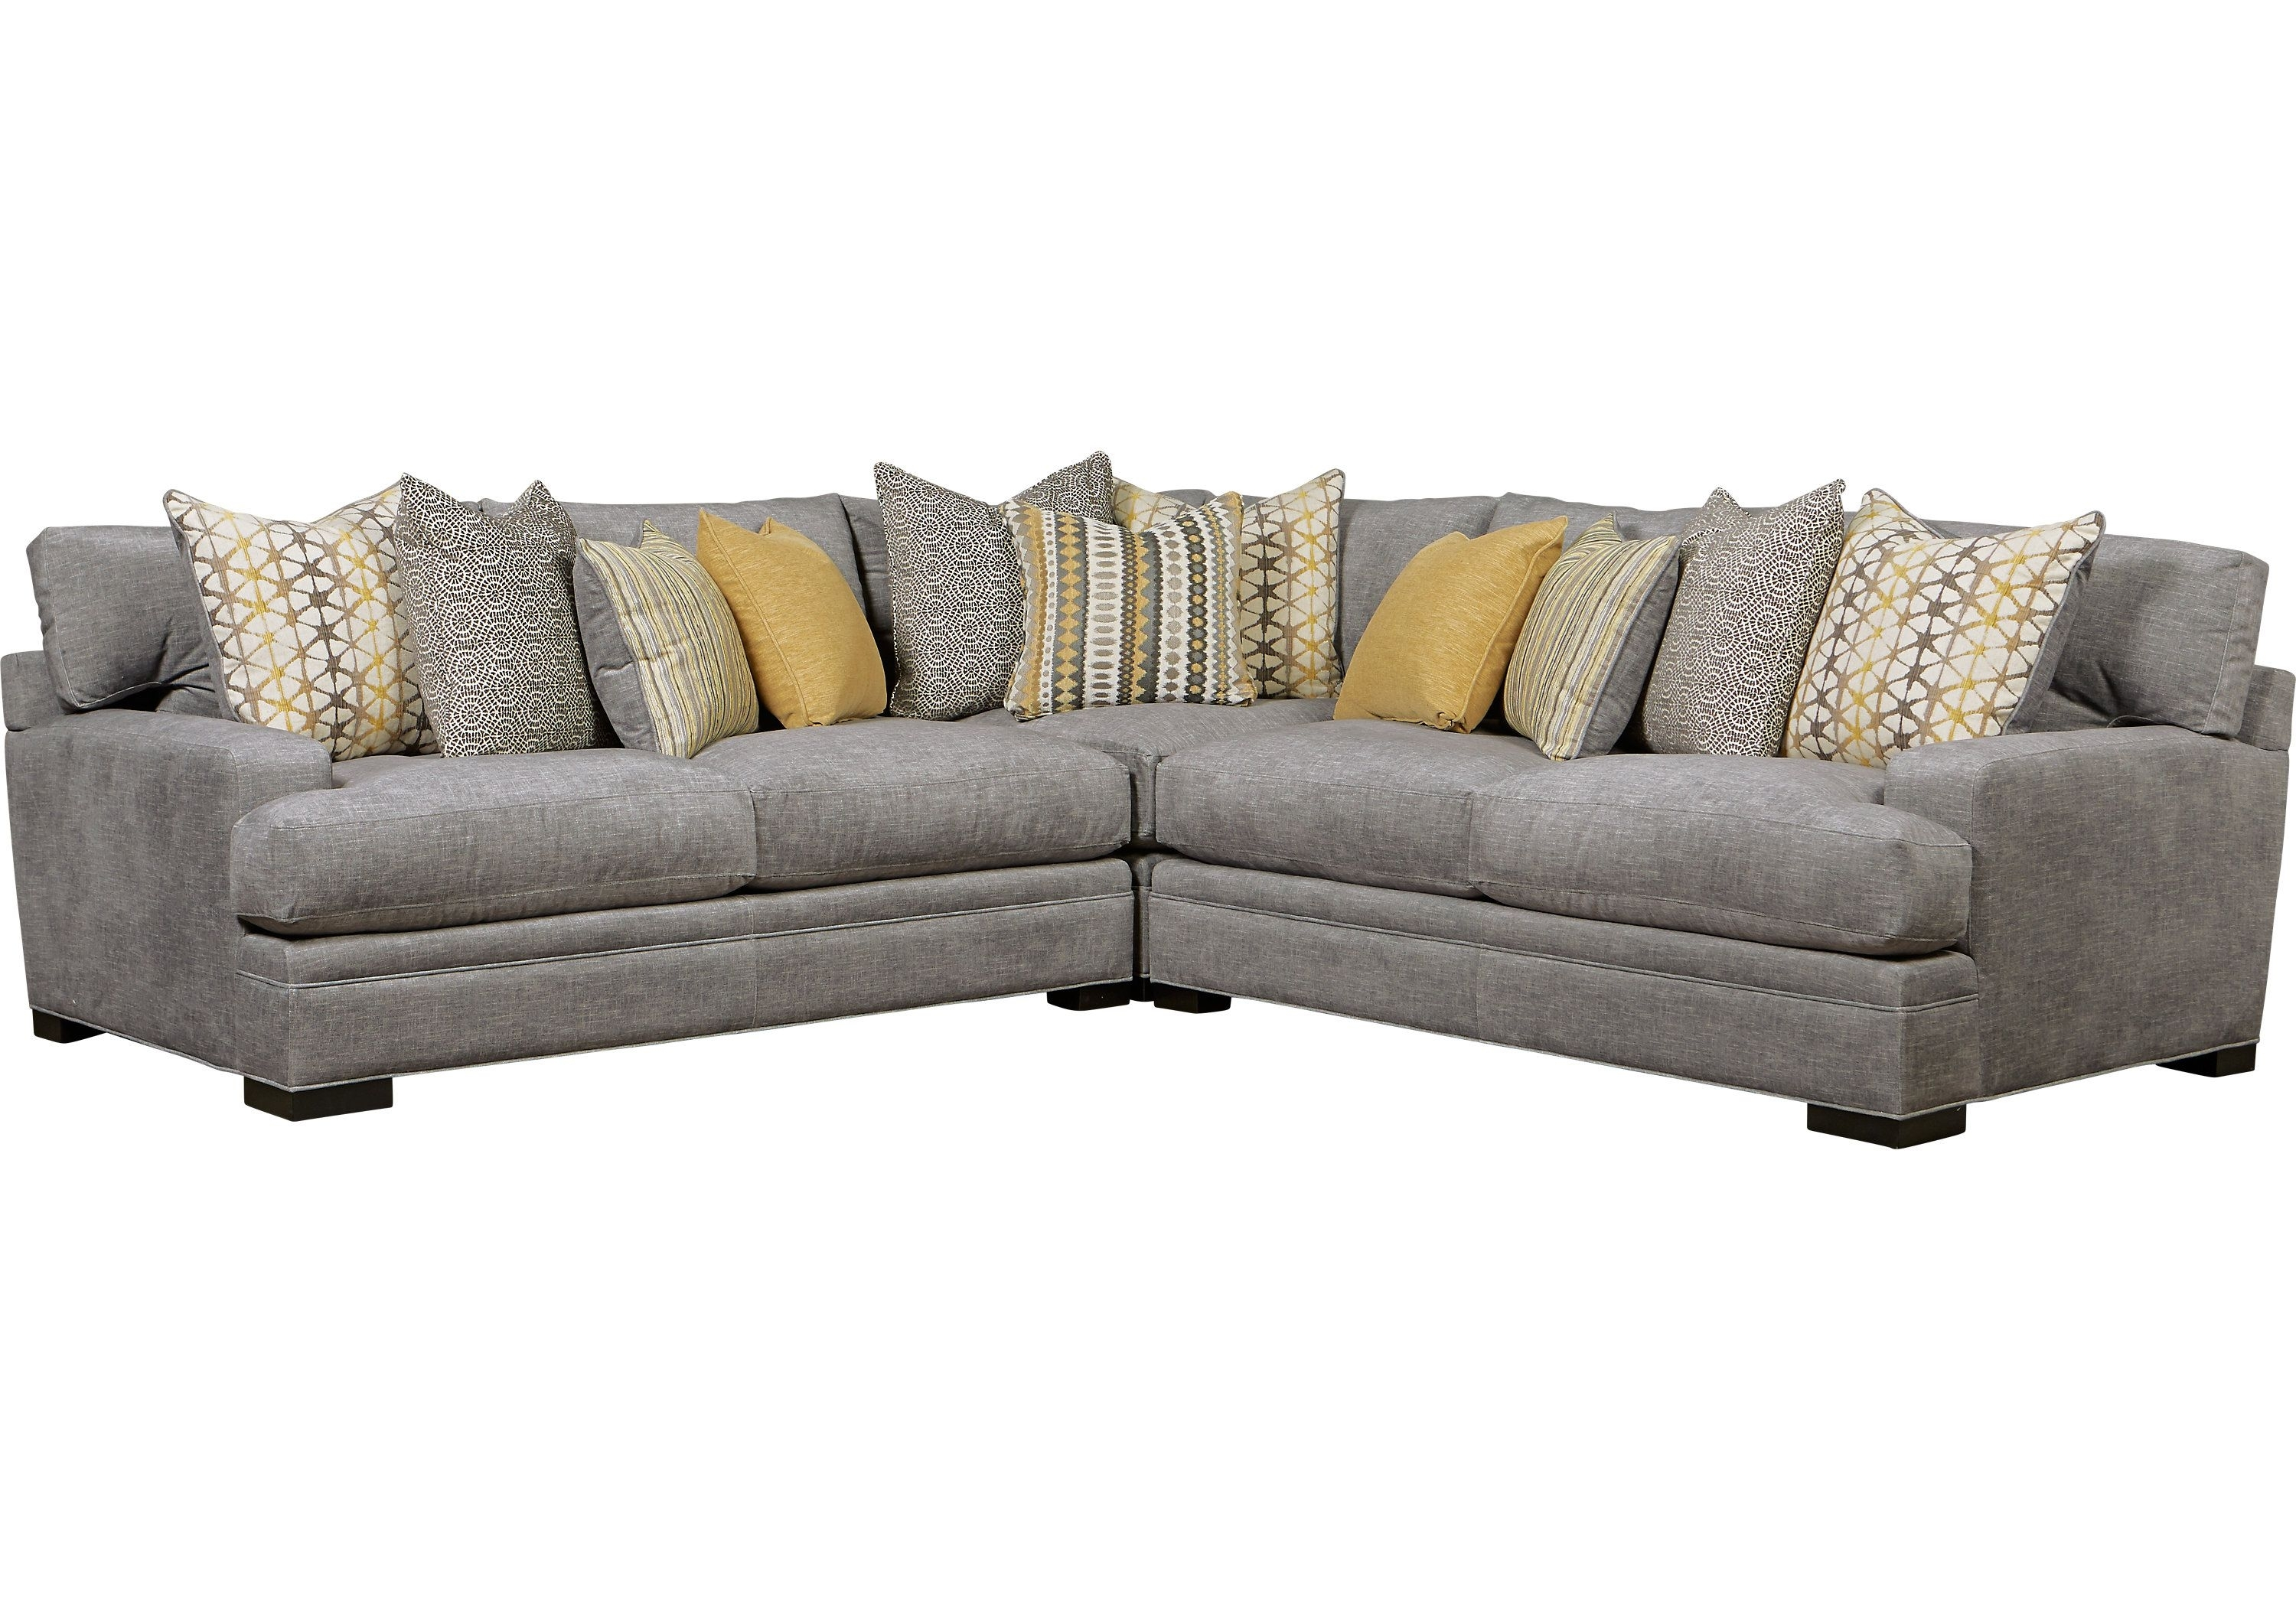 Picture Of Cindy Crawford Home Palm Springs Gray 3 Pc Sectional From Intended For Cohen Down 2 Piece Sectionals (View 21 of 25)